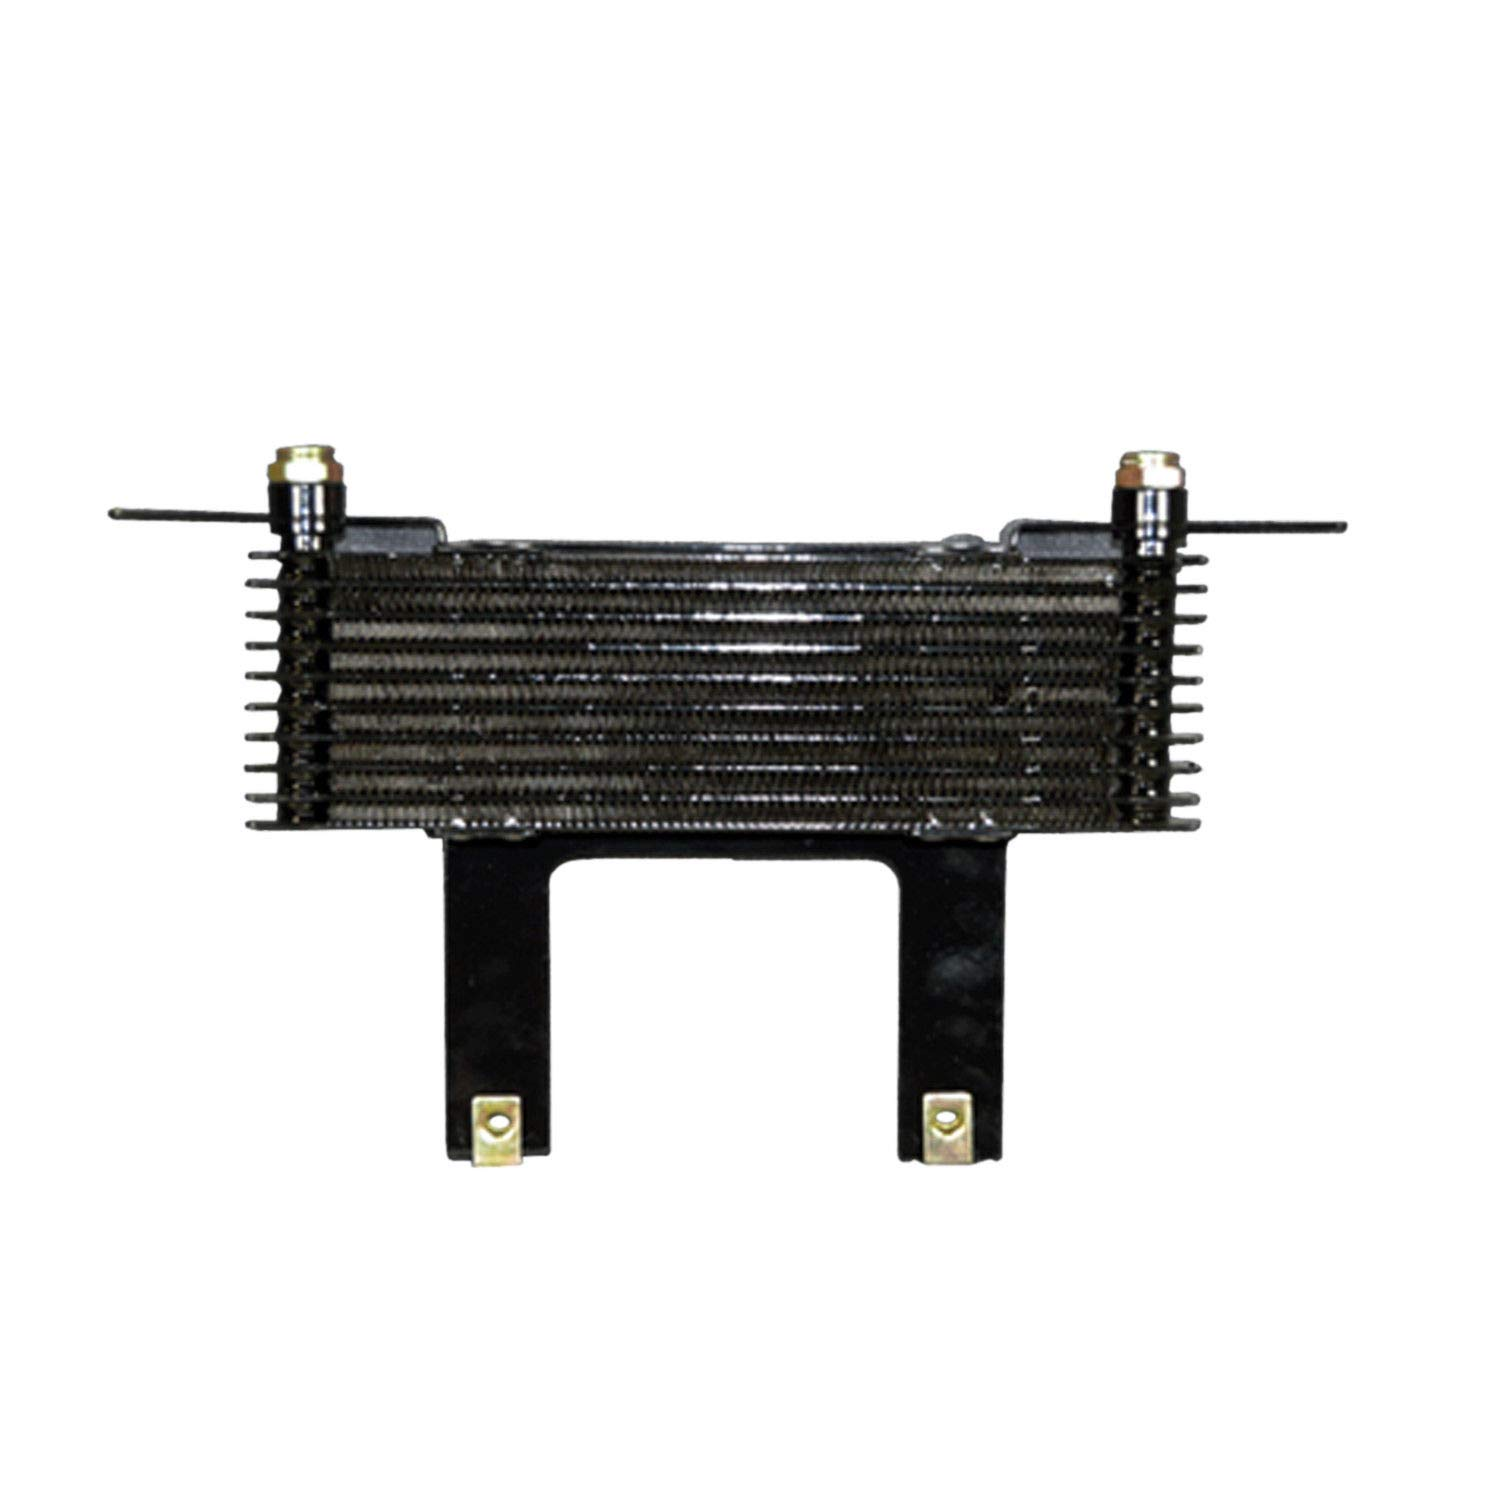 New Automatic Transmission Oil Cooler Assembly For 1999-2013 Chevrolet Silverado /& GMC Sierra With Gas Engine GM4050103